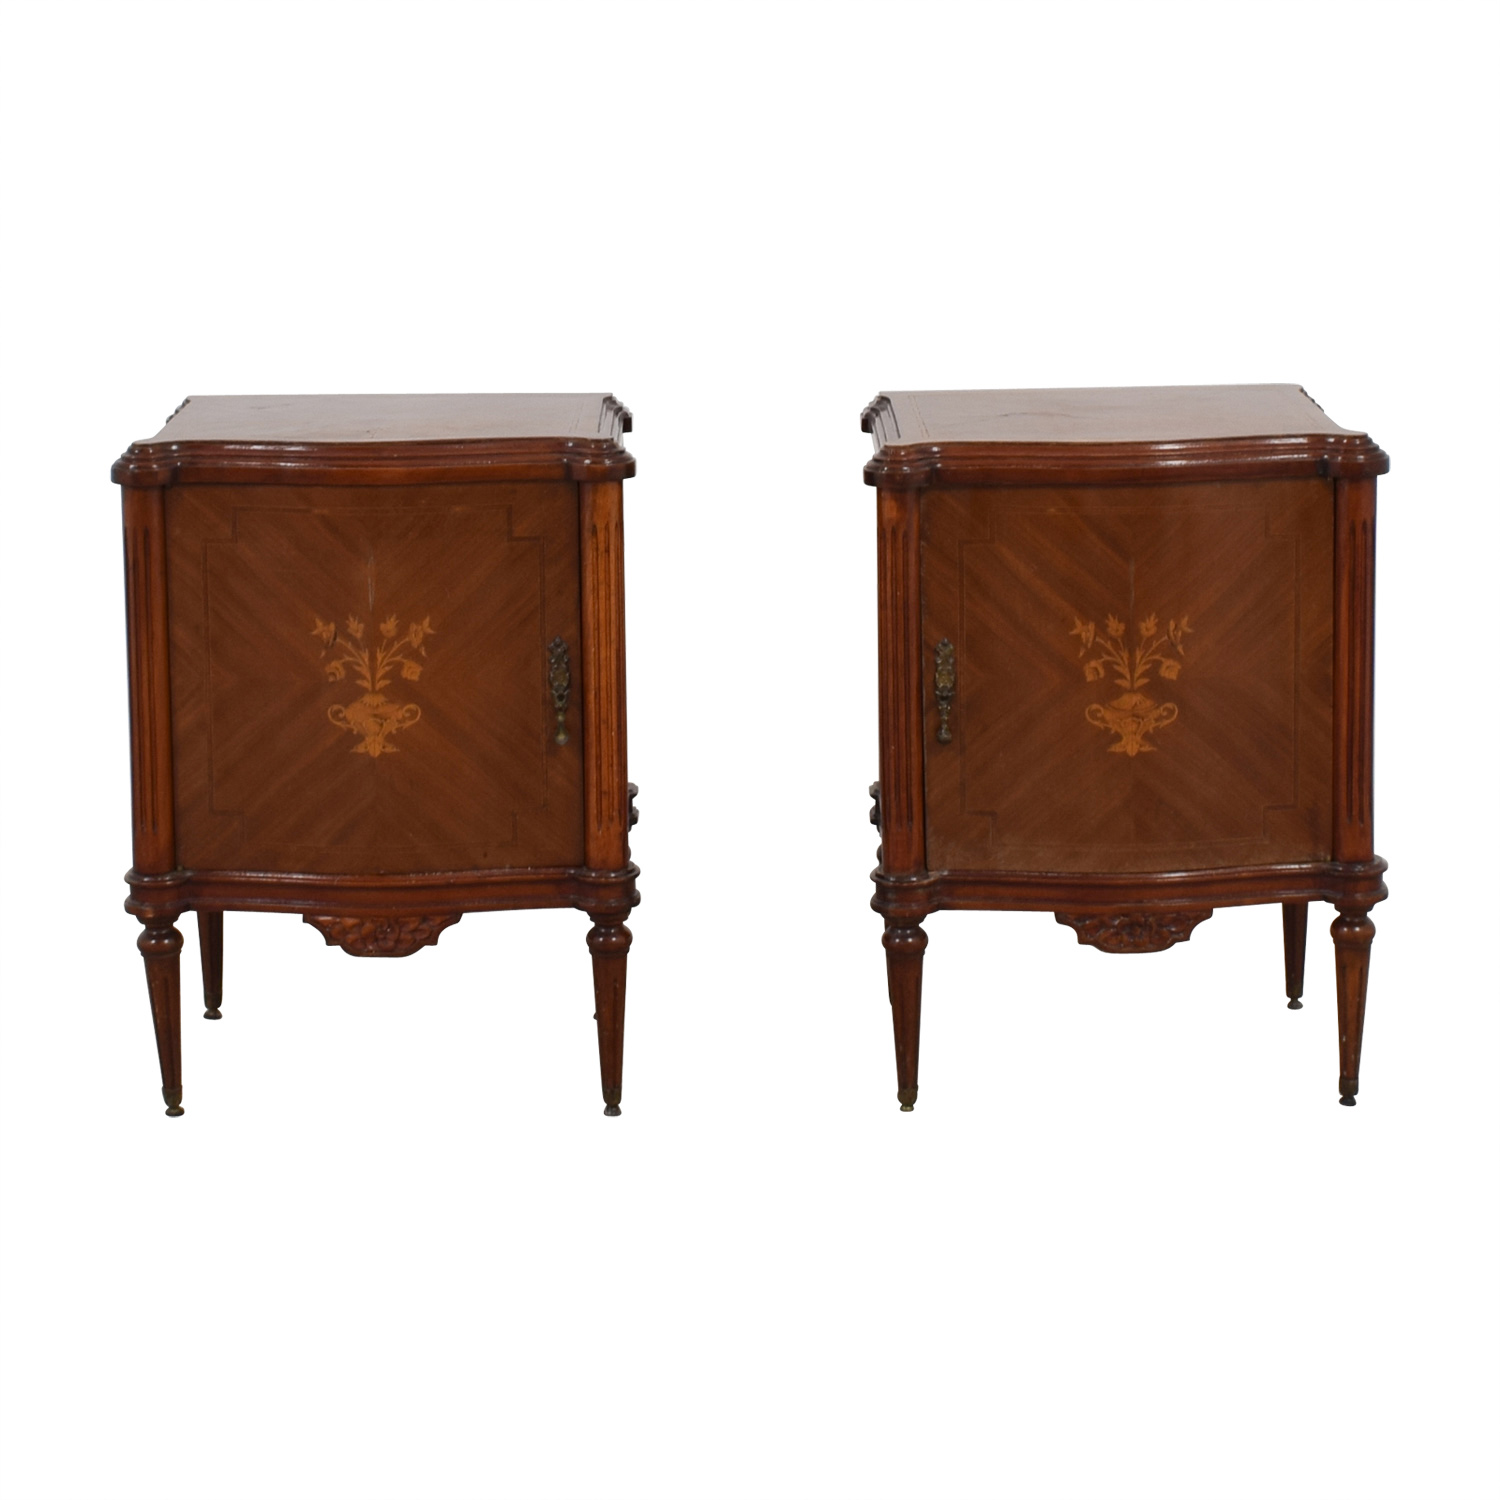 Wooden Nightstands with Inlaid Design on sale